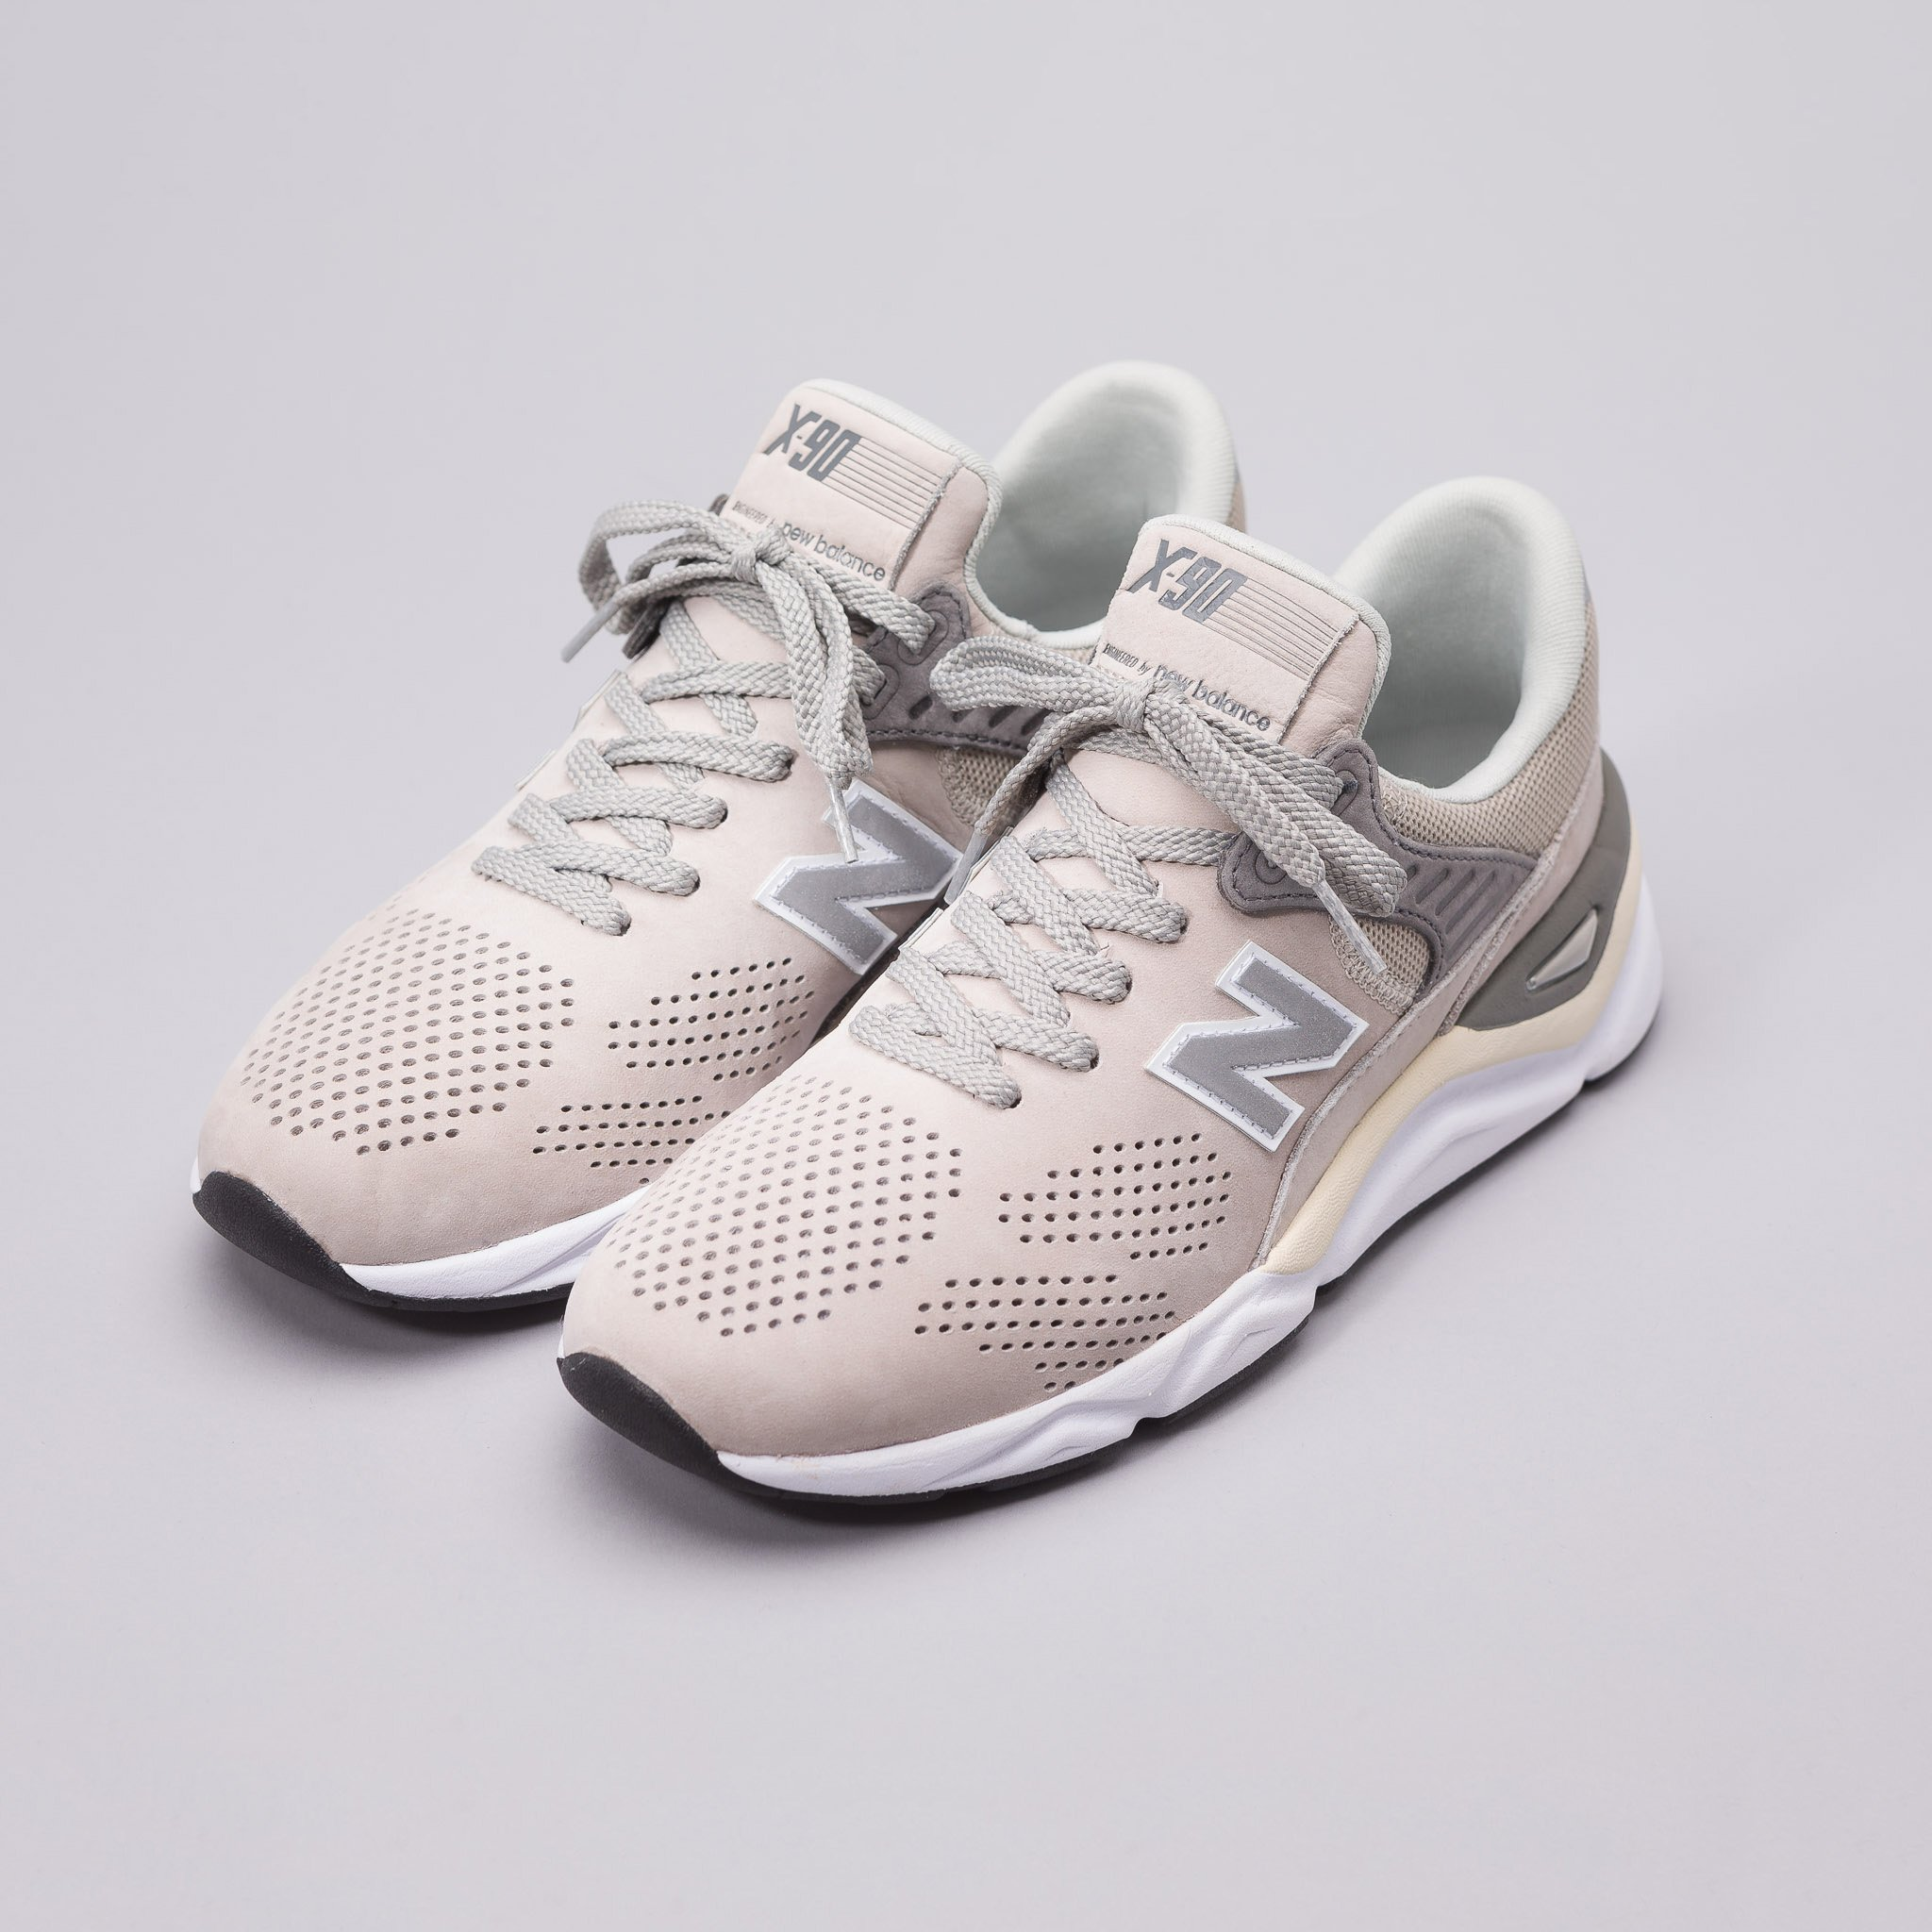 New Balance X-90 Grey/ White